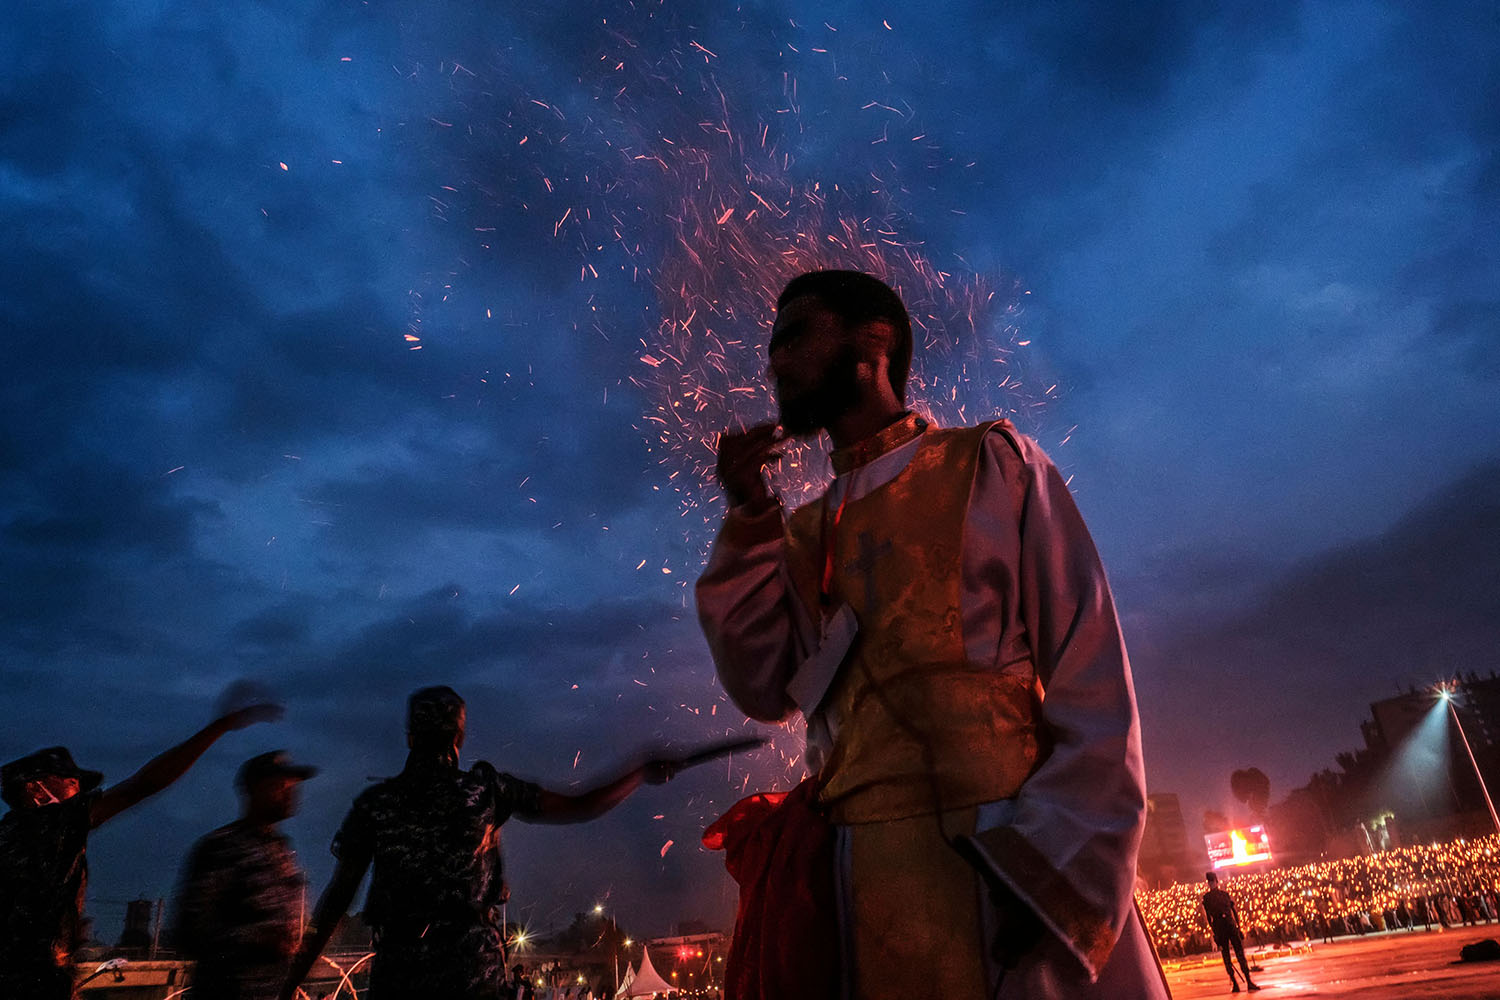 An Ethiopian Orthodox devotee stands in front of a bonfire during celebrations of the eve of the Ethiopian Orthodox holiday of Meskel in Addis Ababa, Ethiopia, on Sept. 26. Eduardo Soteras/AFP via Getty Images